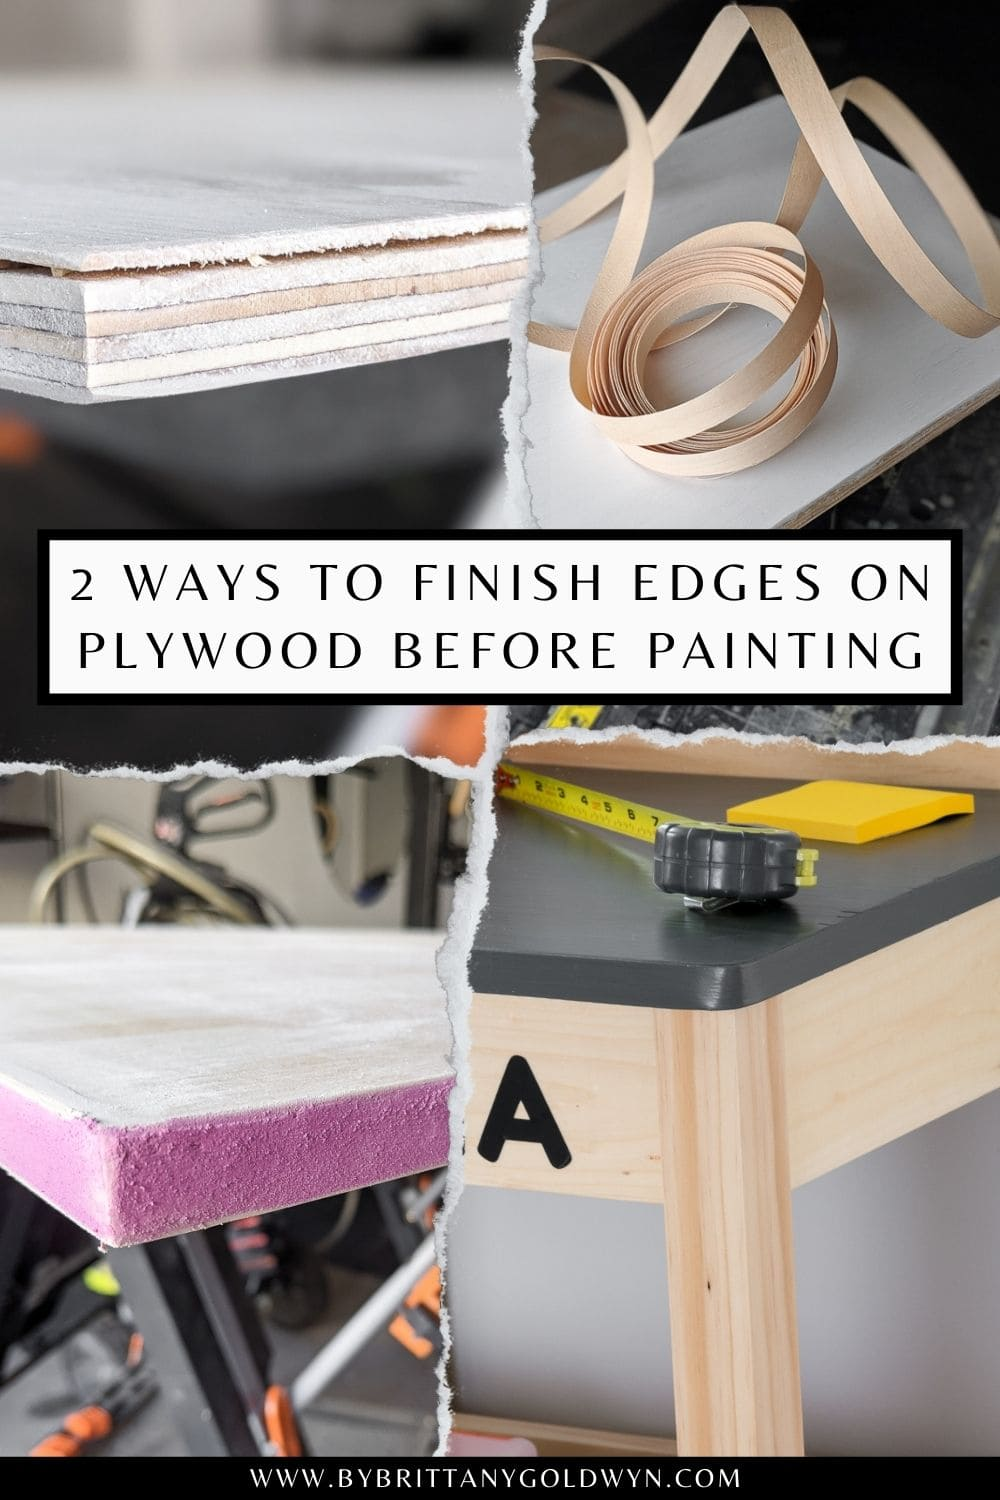 pinnable graphic with images of plywood projects and text about ways to finish edges on plywood before painting